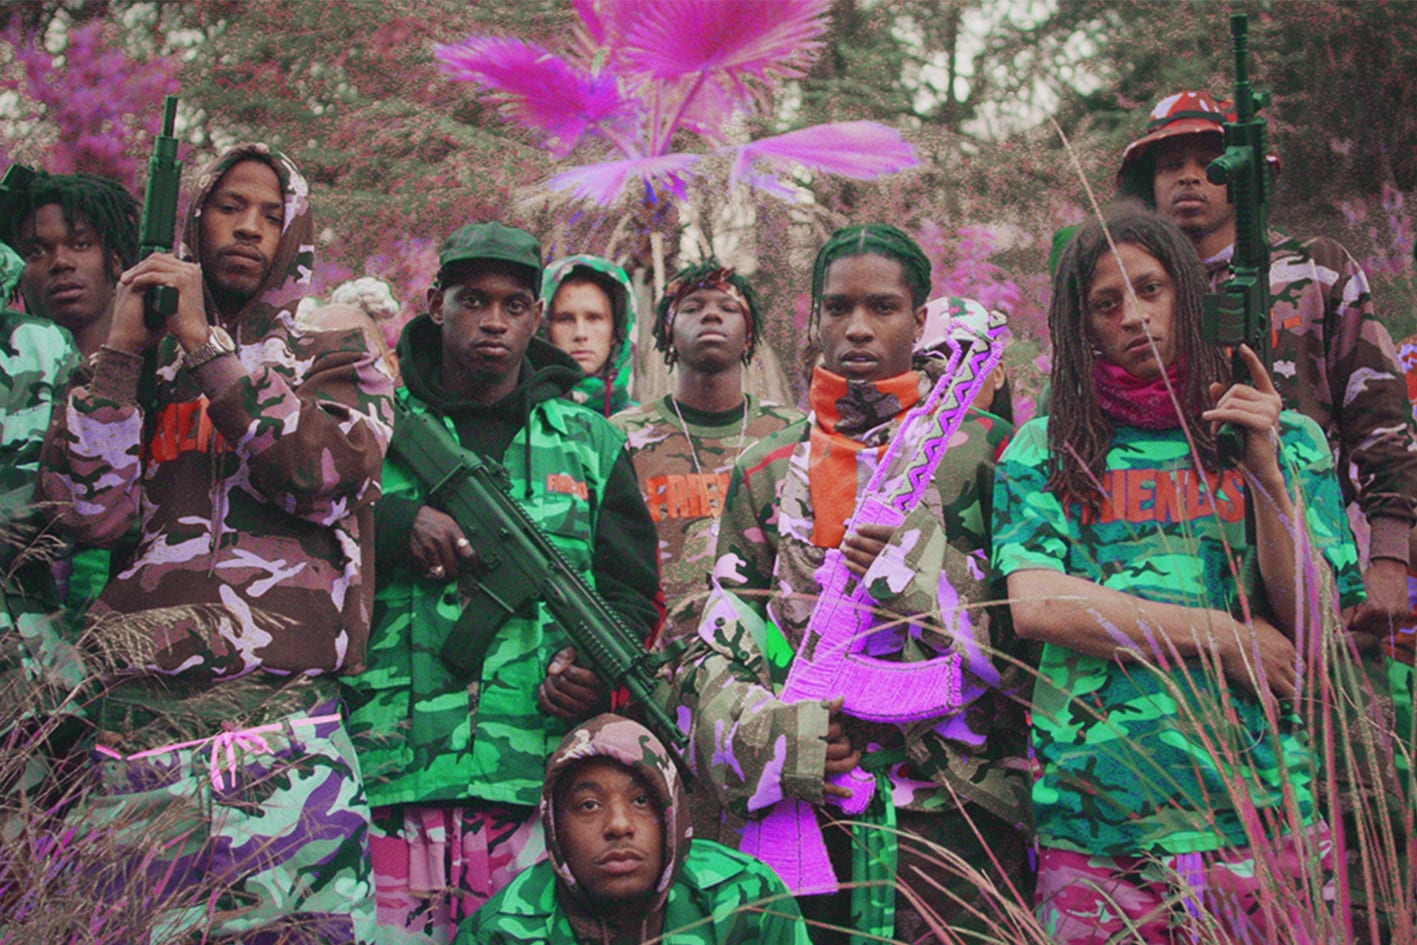 asap-mob-yamborgini-high-rocky-antidote